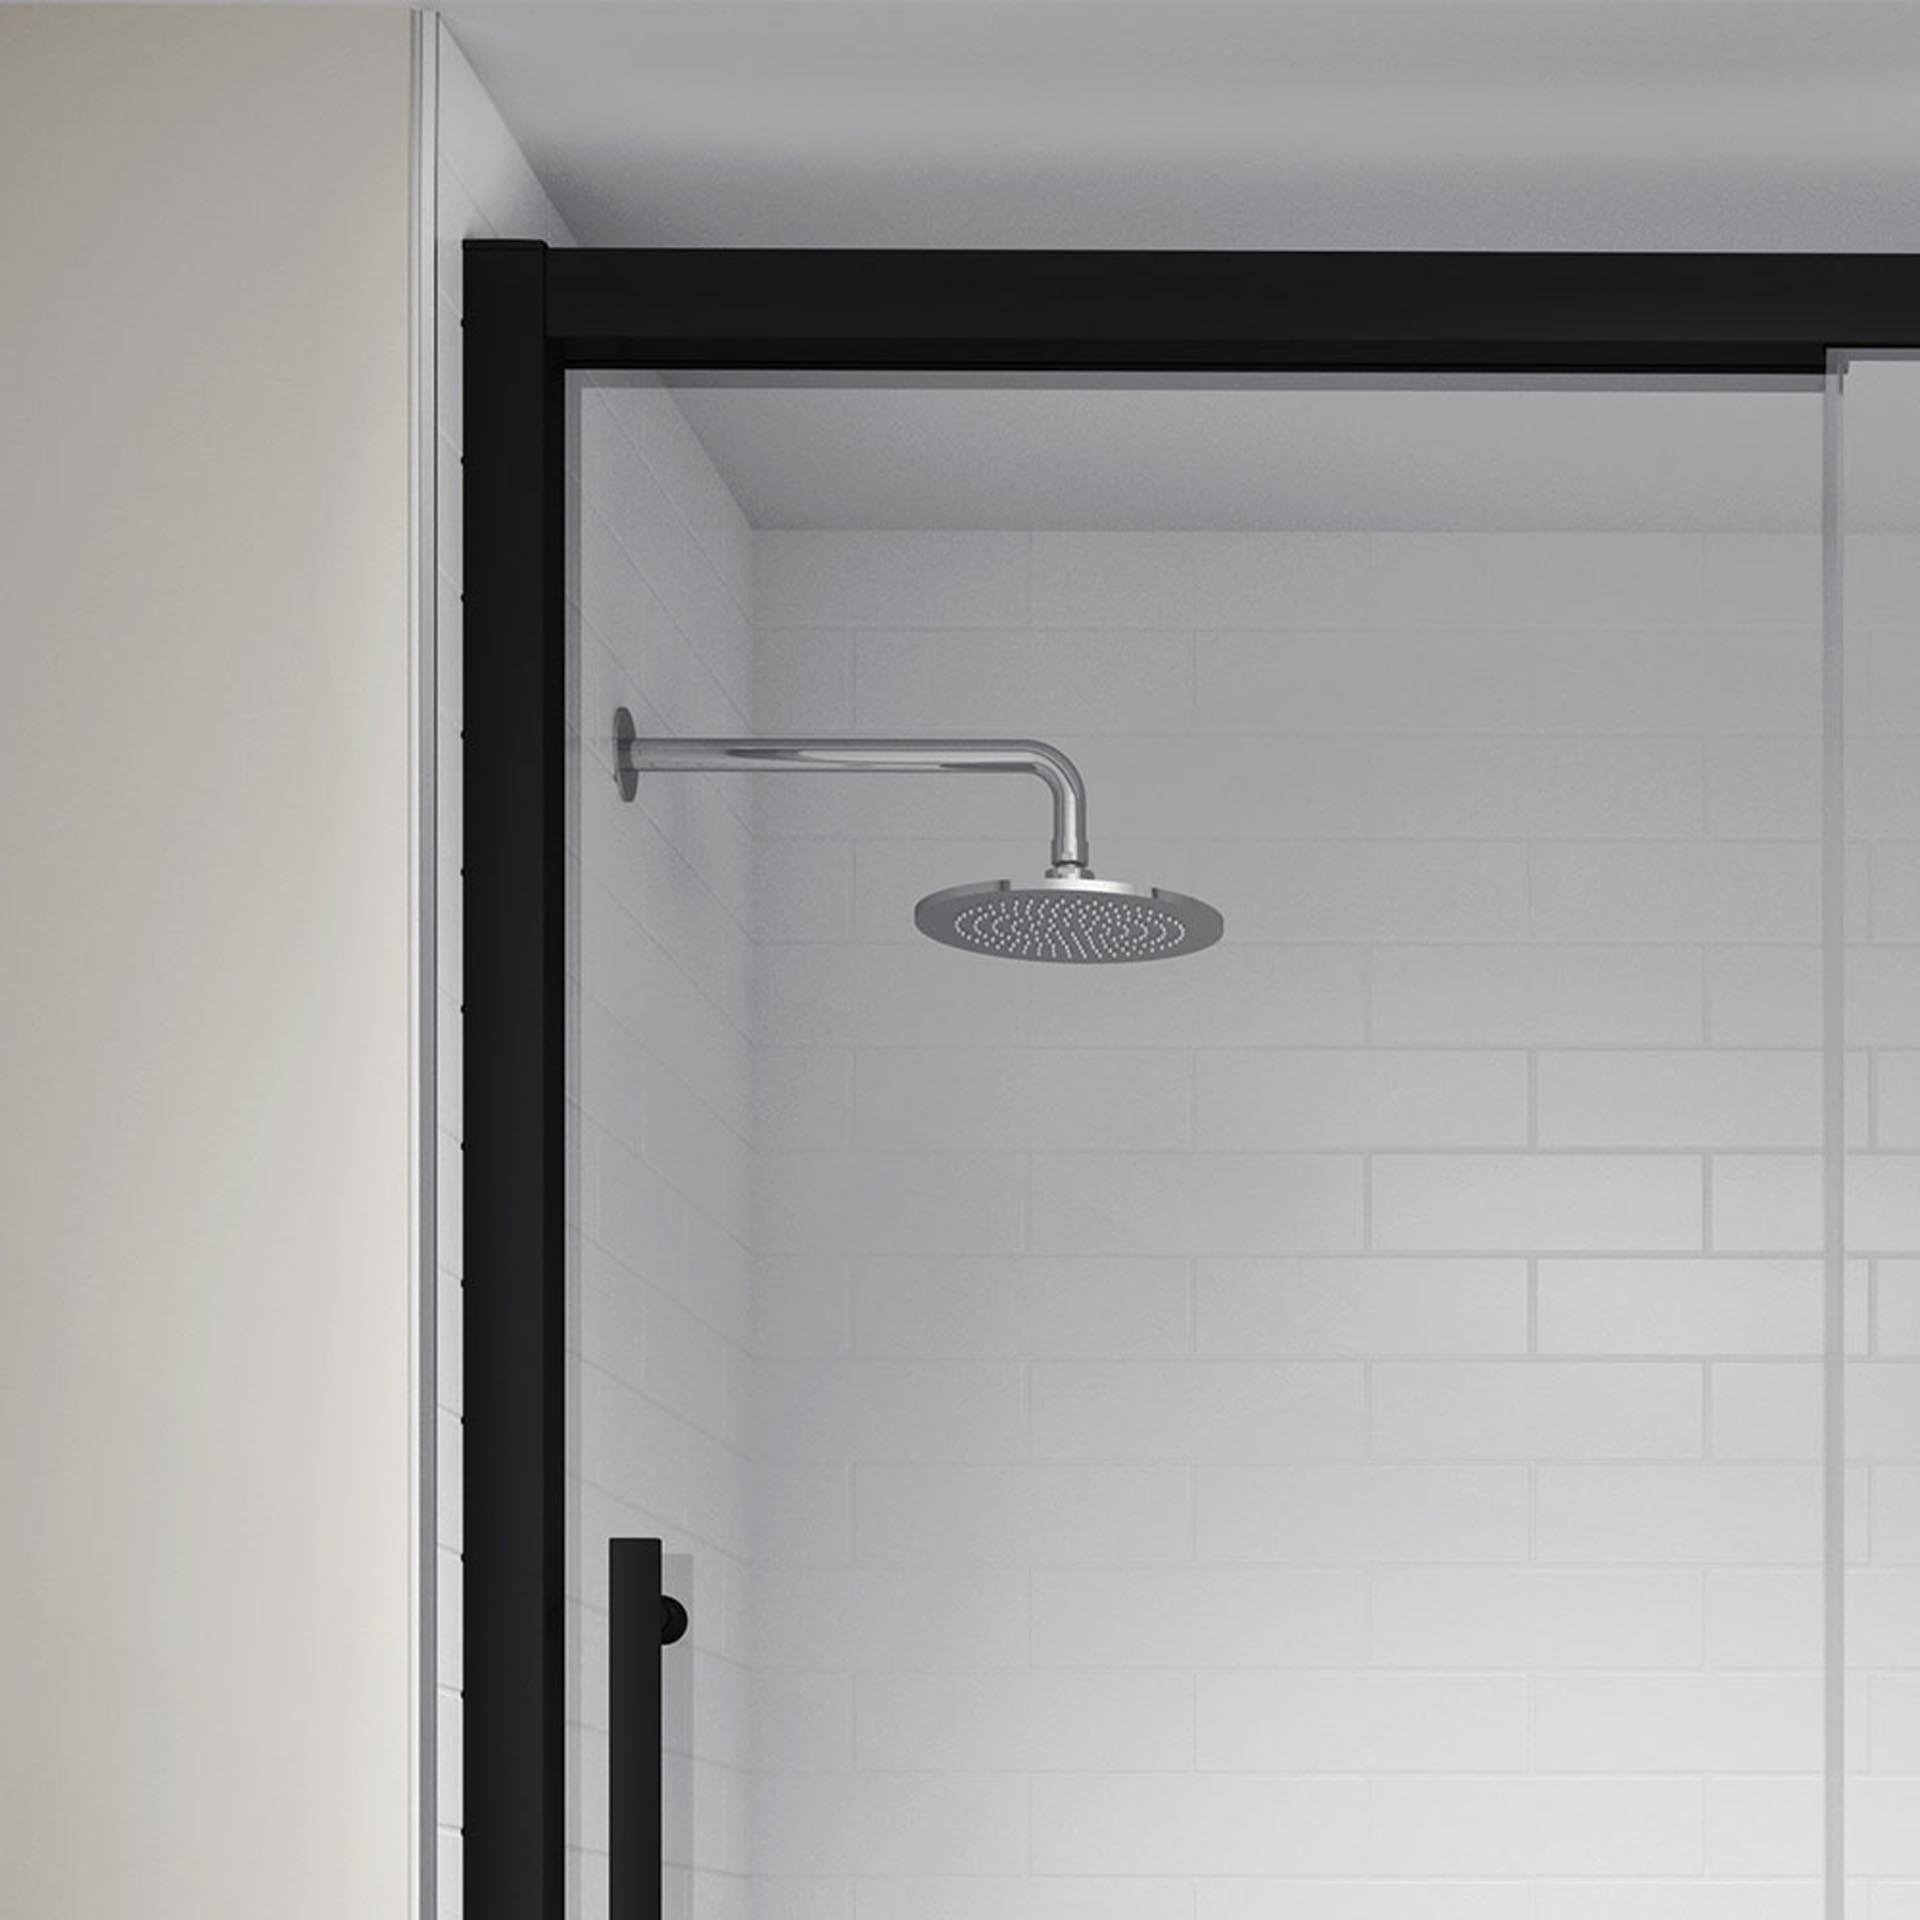 What Are Shower Systems?